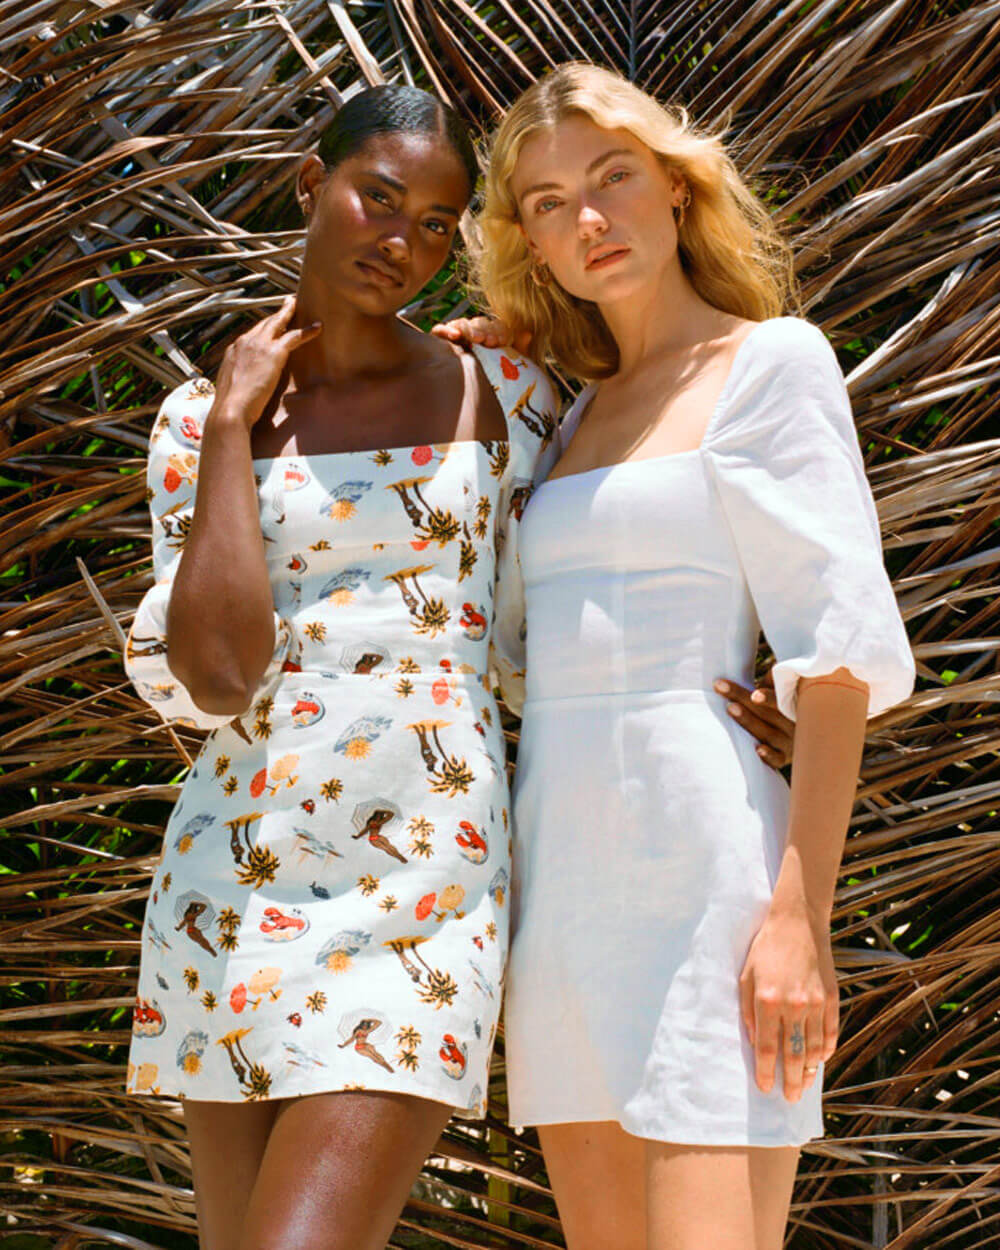 Reformation sustainable Boho clothing